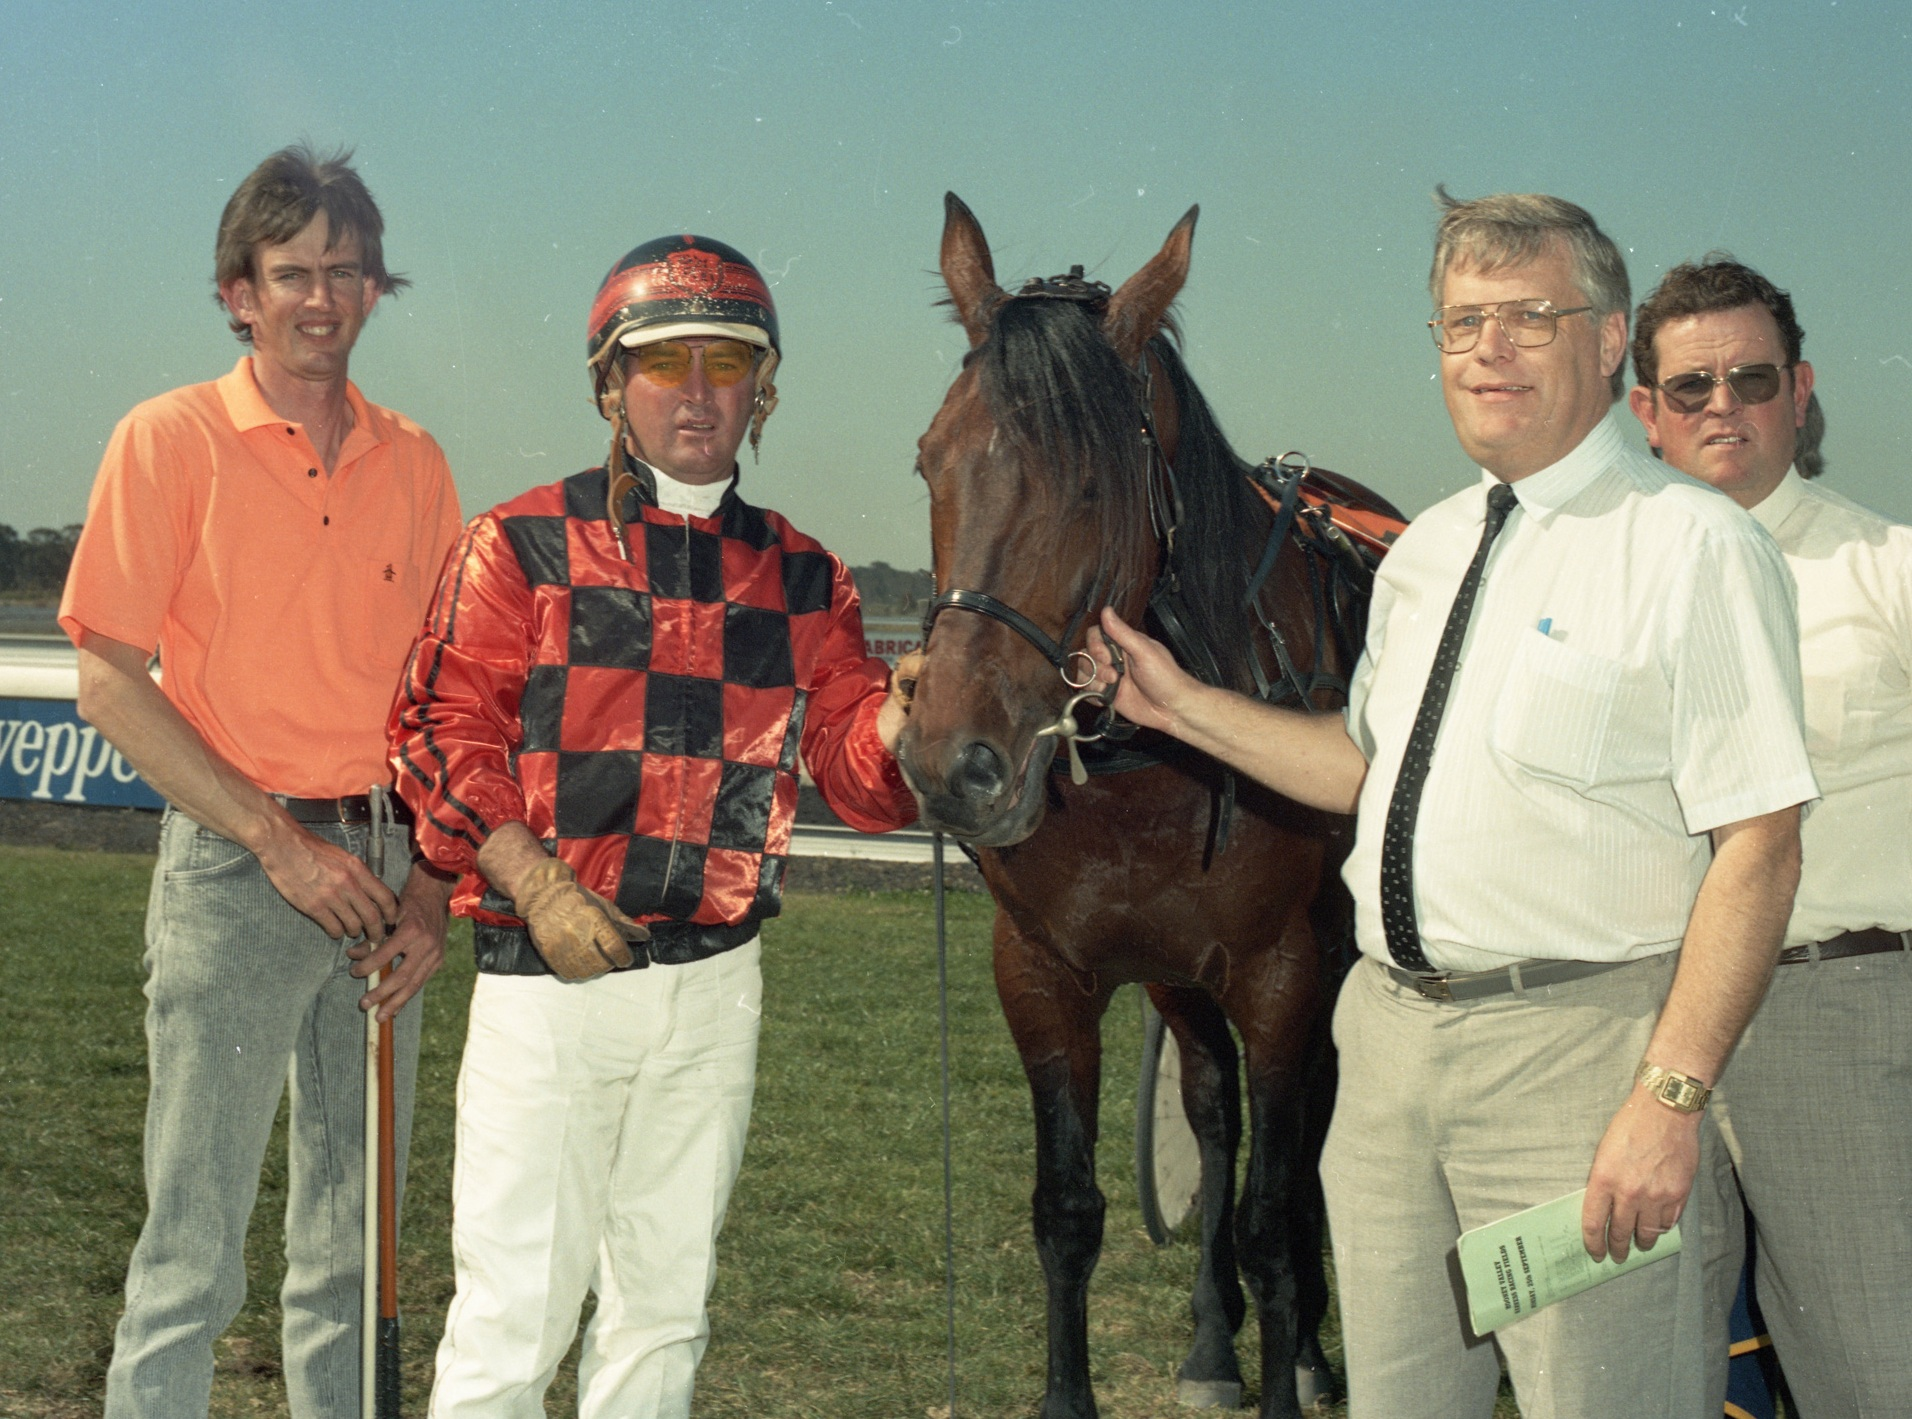 Image courtesy National Trotguide - Howard with his mentor, Brian Hancock, Wyong 1989.